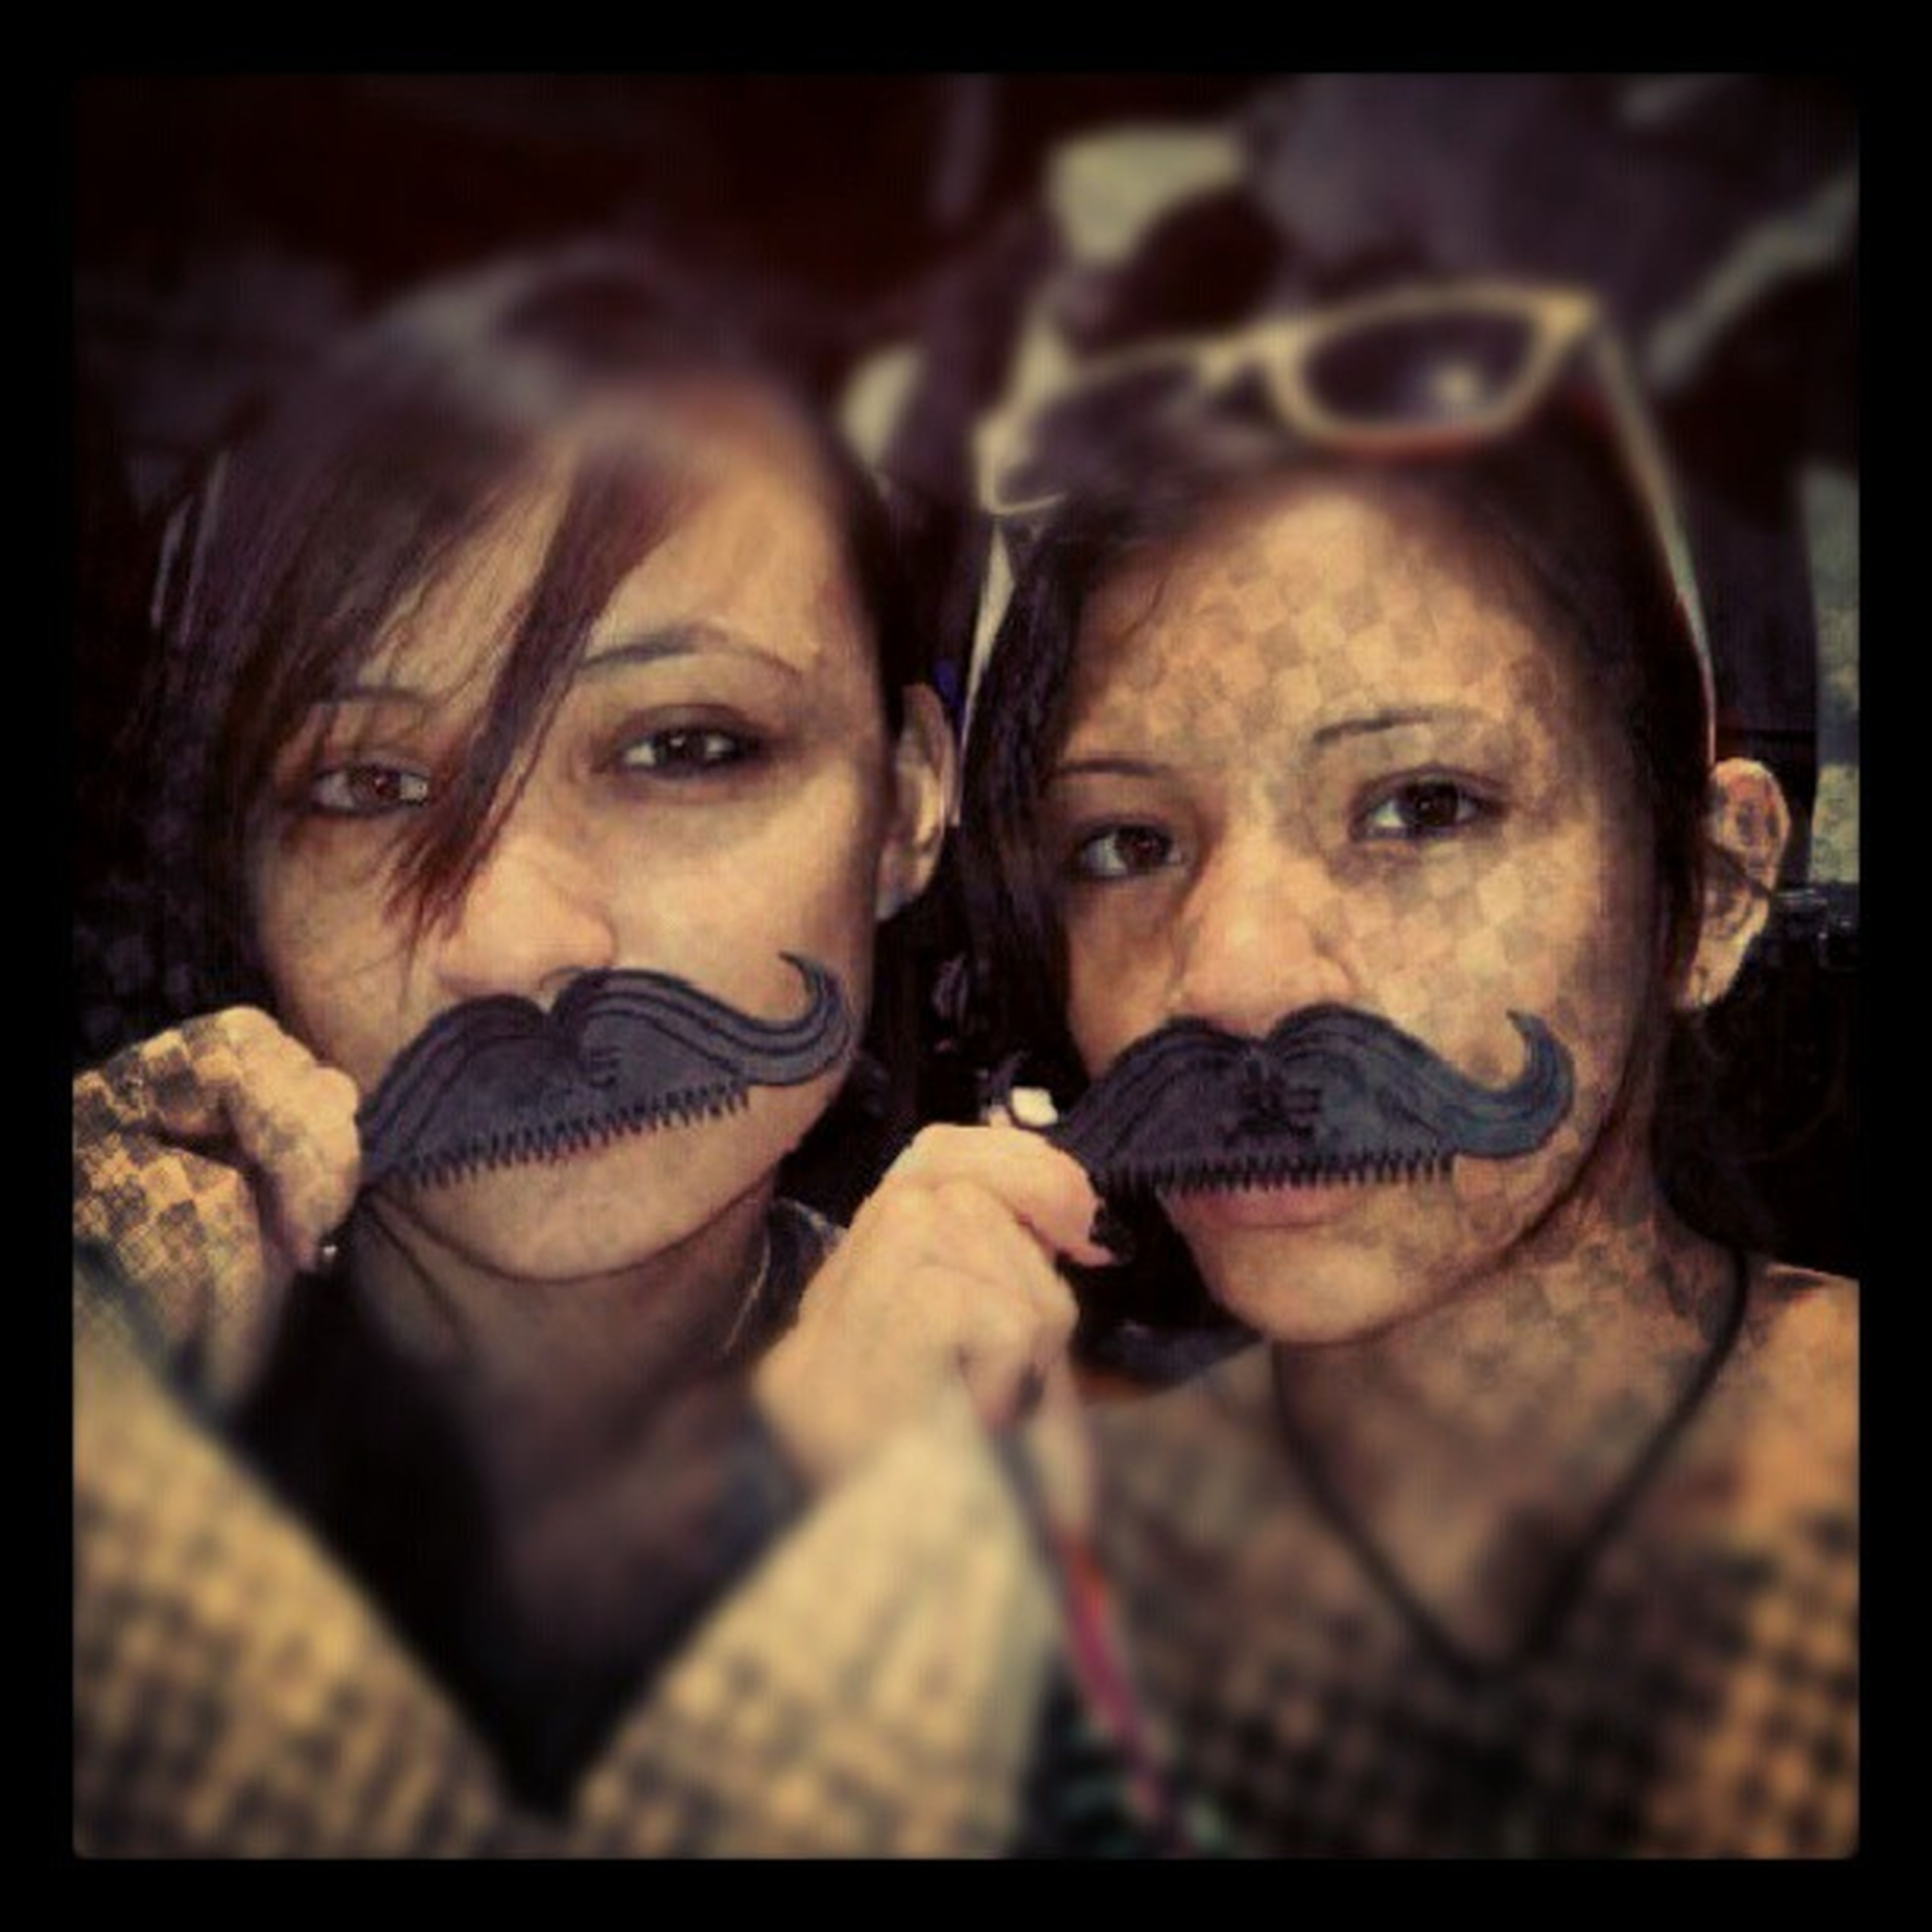 Sunnies Hands Roar Igeroftheday Iger Adorable Funny Sisters Pictimes moustachpopular Sneakymexican LOL Gold